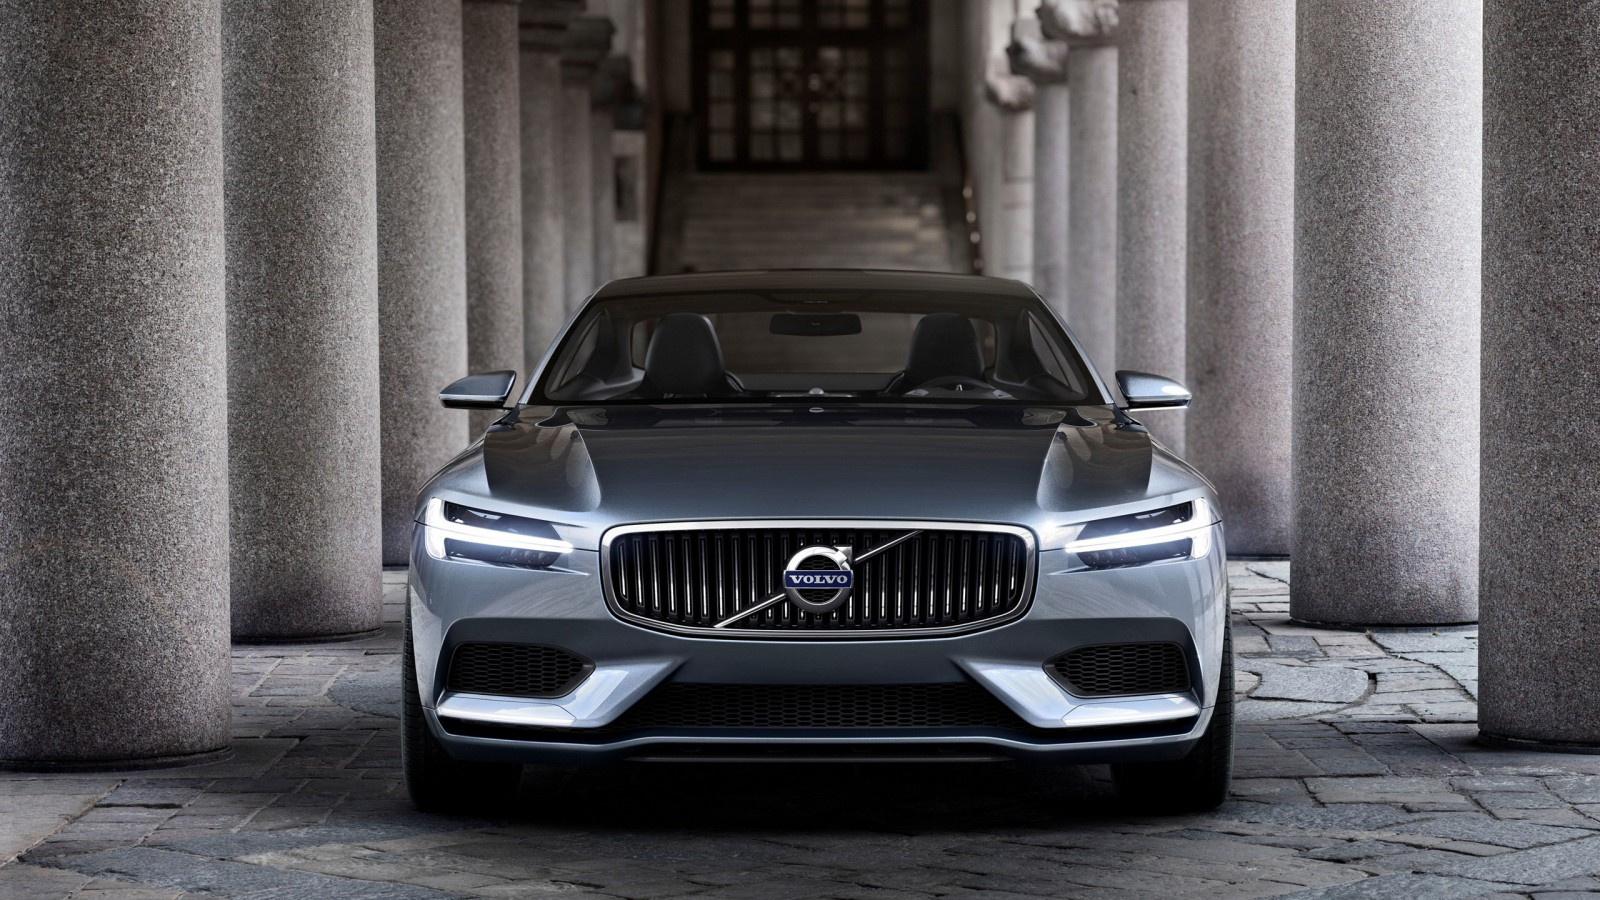 2015 Volvo Concept Coupe Wallpaper | HD Car Wallpapers ...